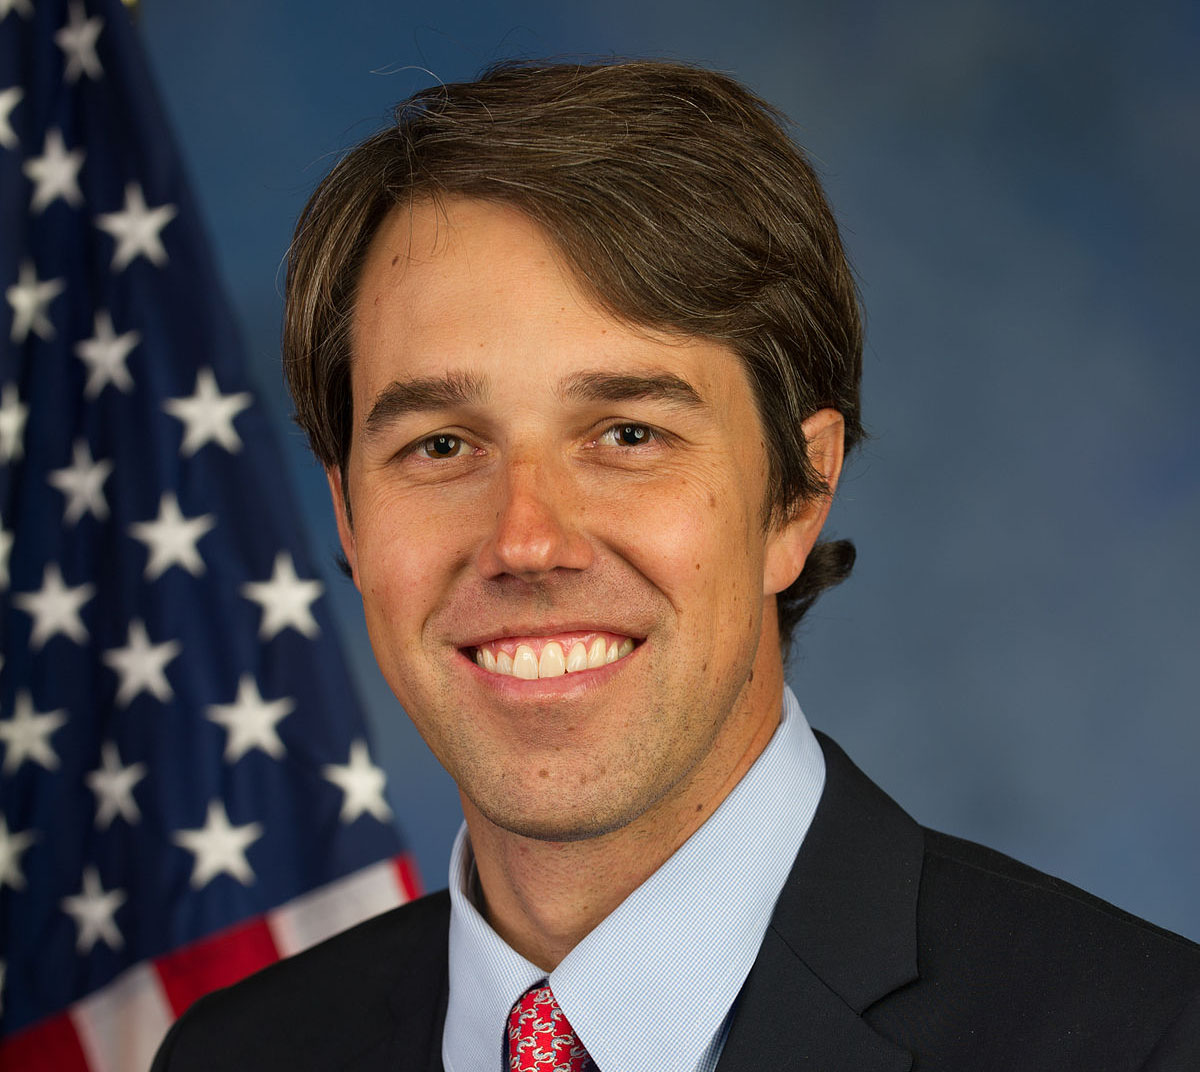 Former Texas Rep. Beto O'Rourke held a rally in El Paso to combat the president's pro-wall rally